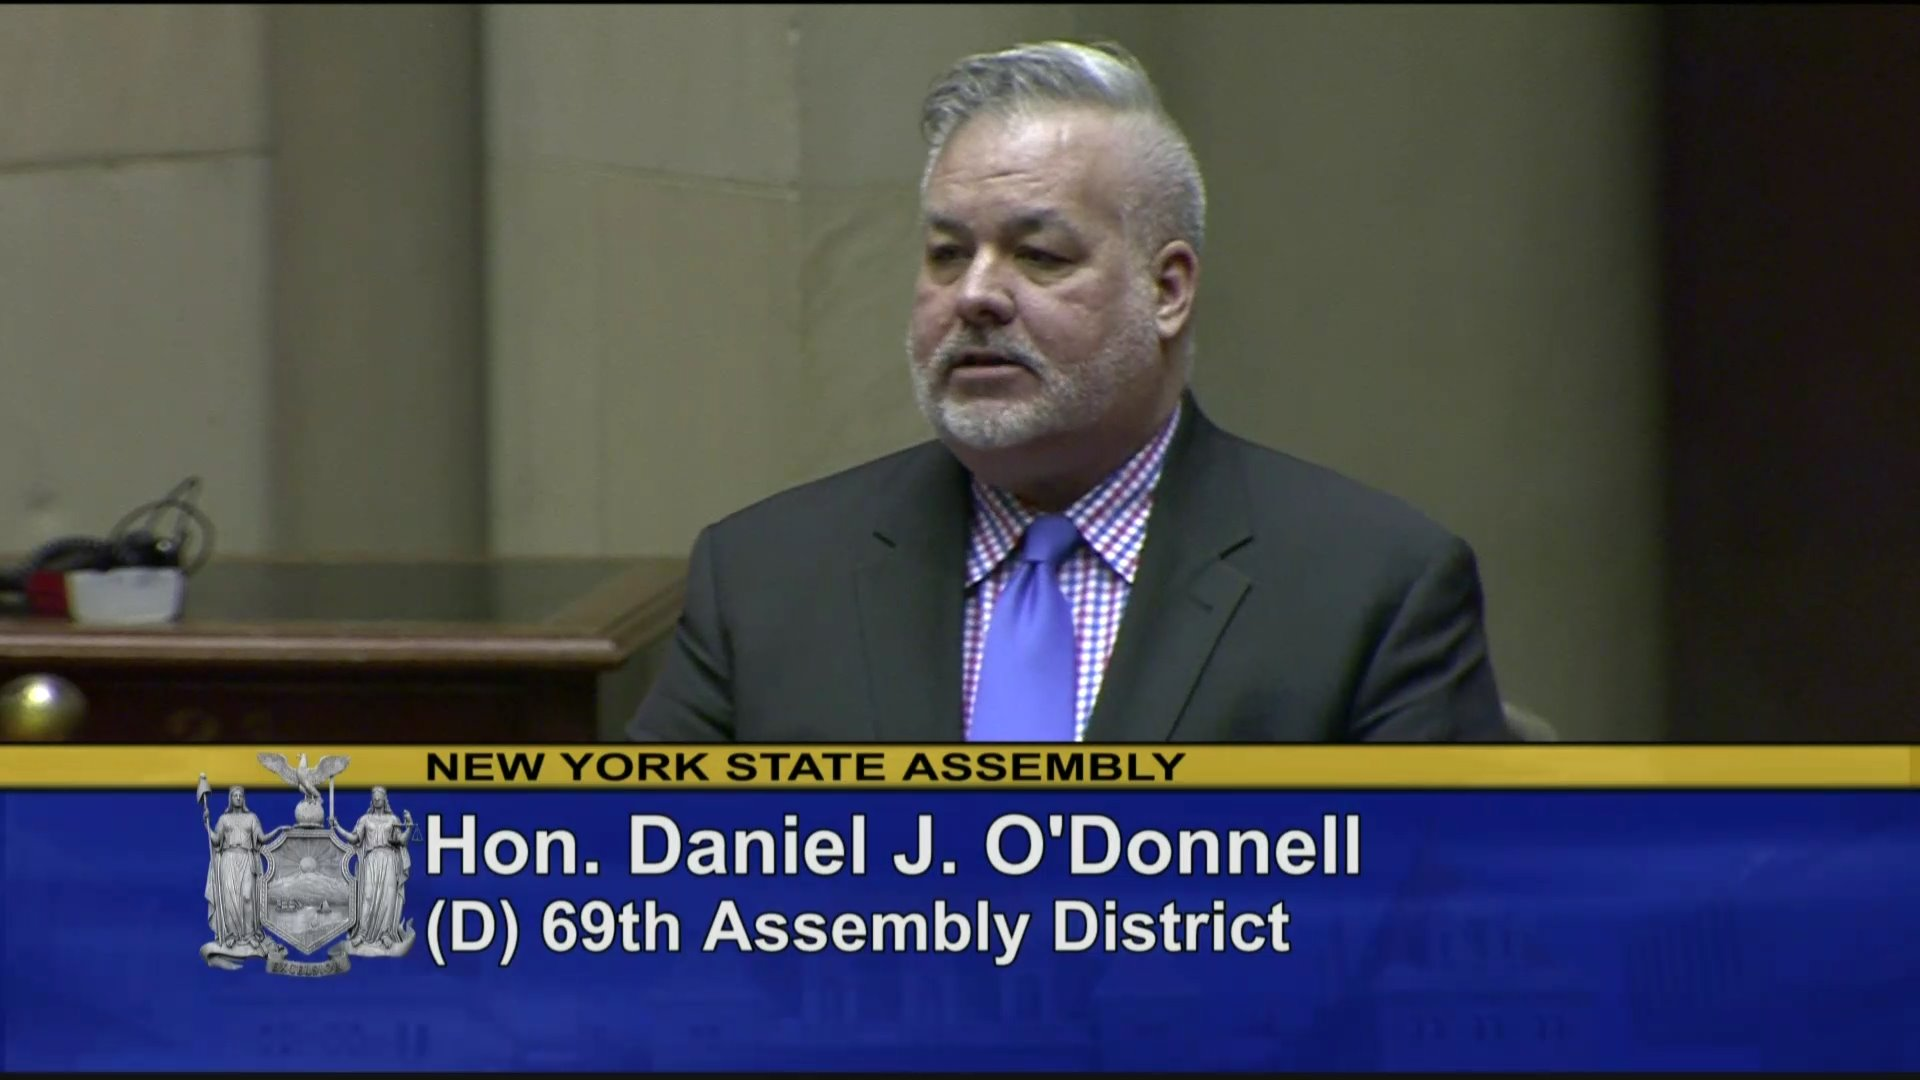 O'Donnell Debates Bill to Keep Guns Away From Domestic Violence Offenders in State Budget